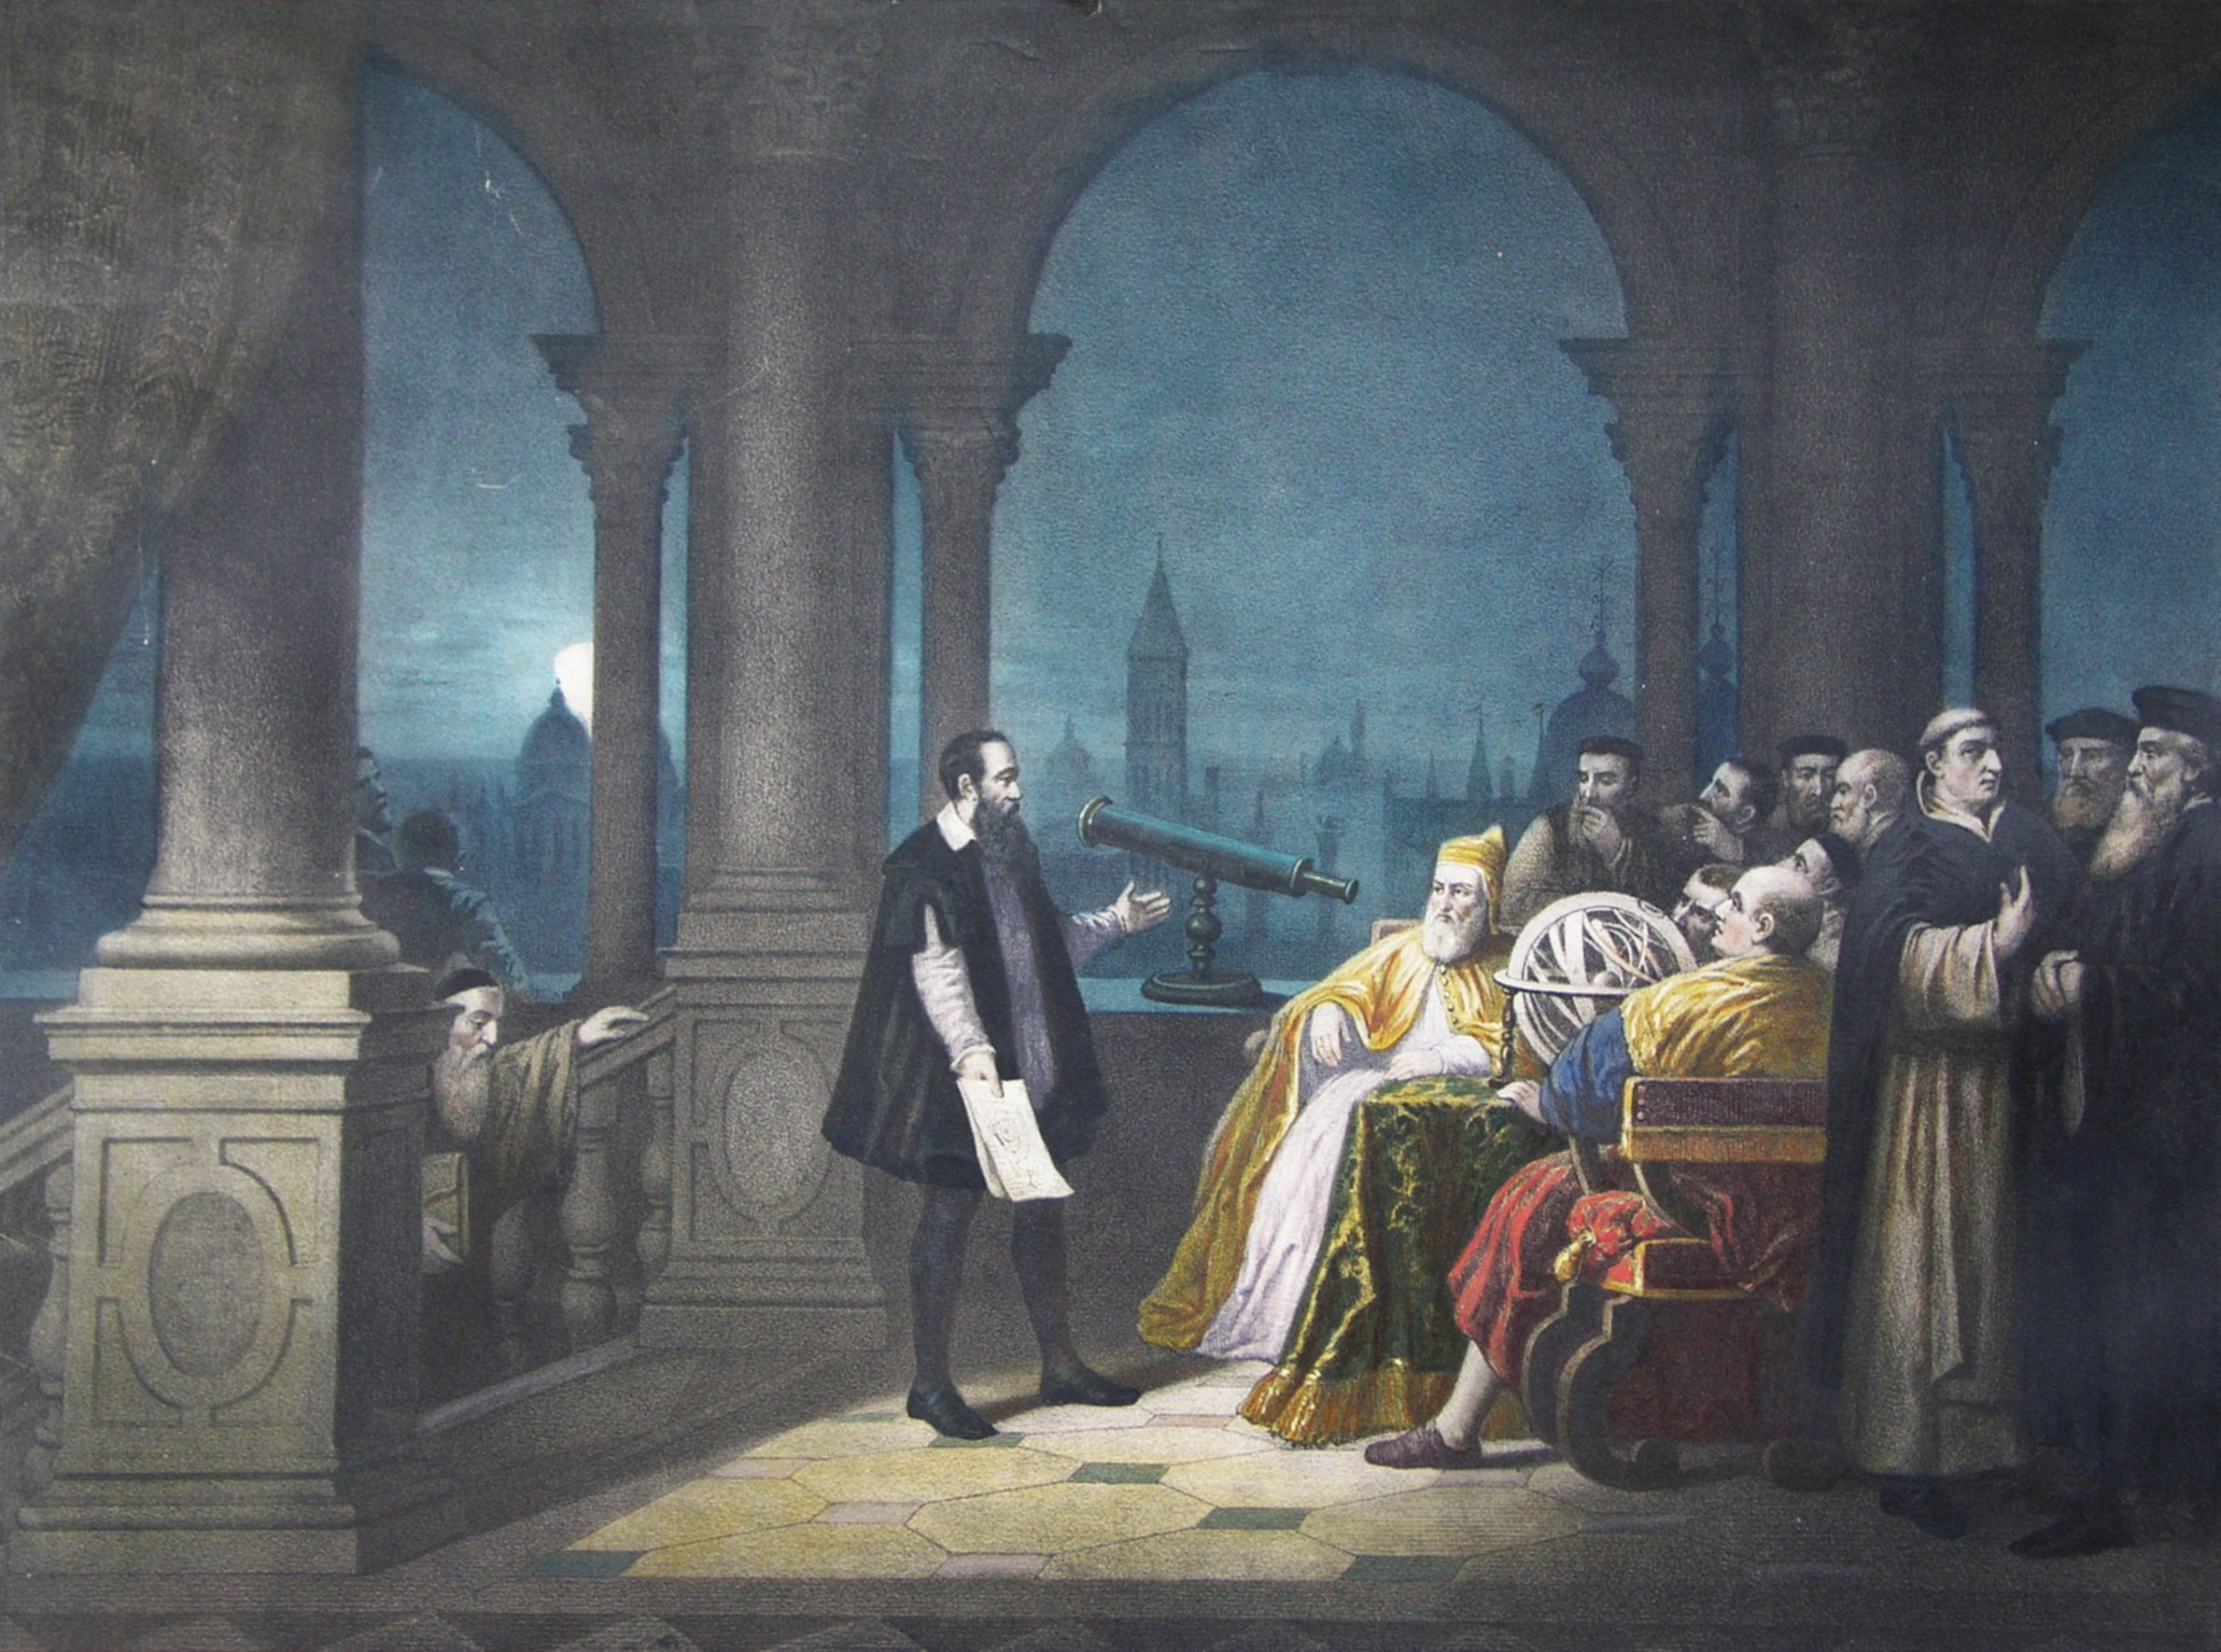 the life of galileo Life of galileo - download as word doc (doc / docx), pdf file (pdf), text file (txt) or read online world literature in translation.